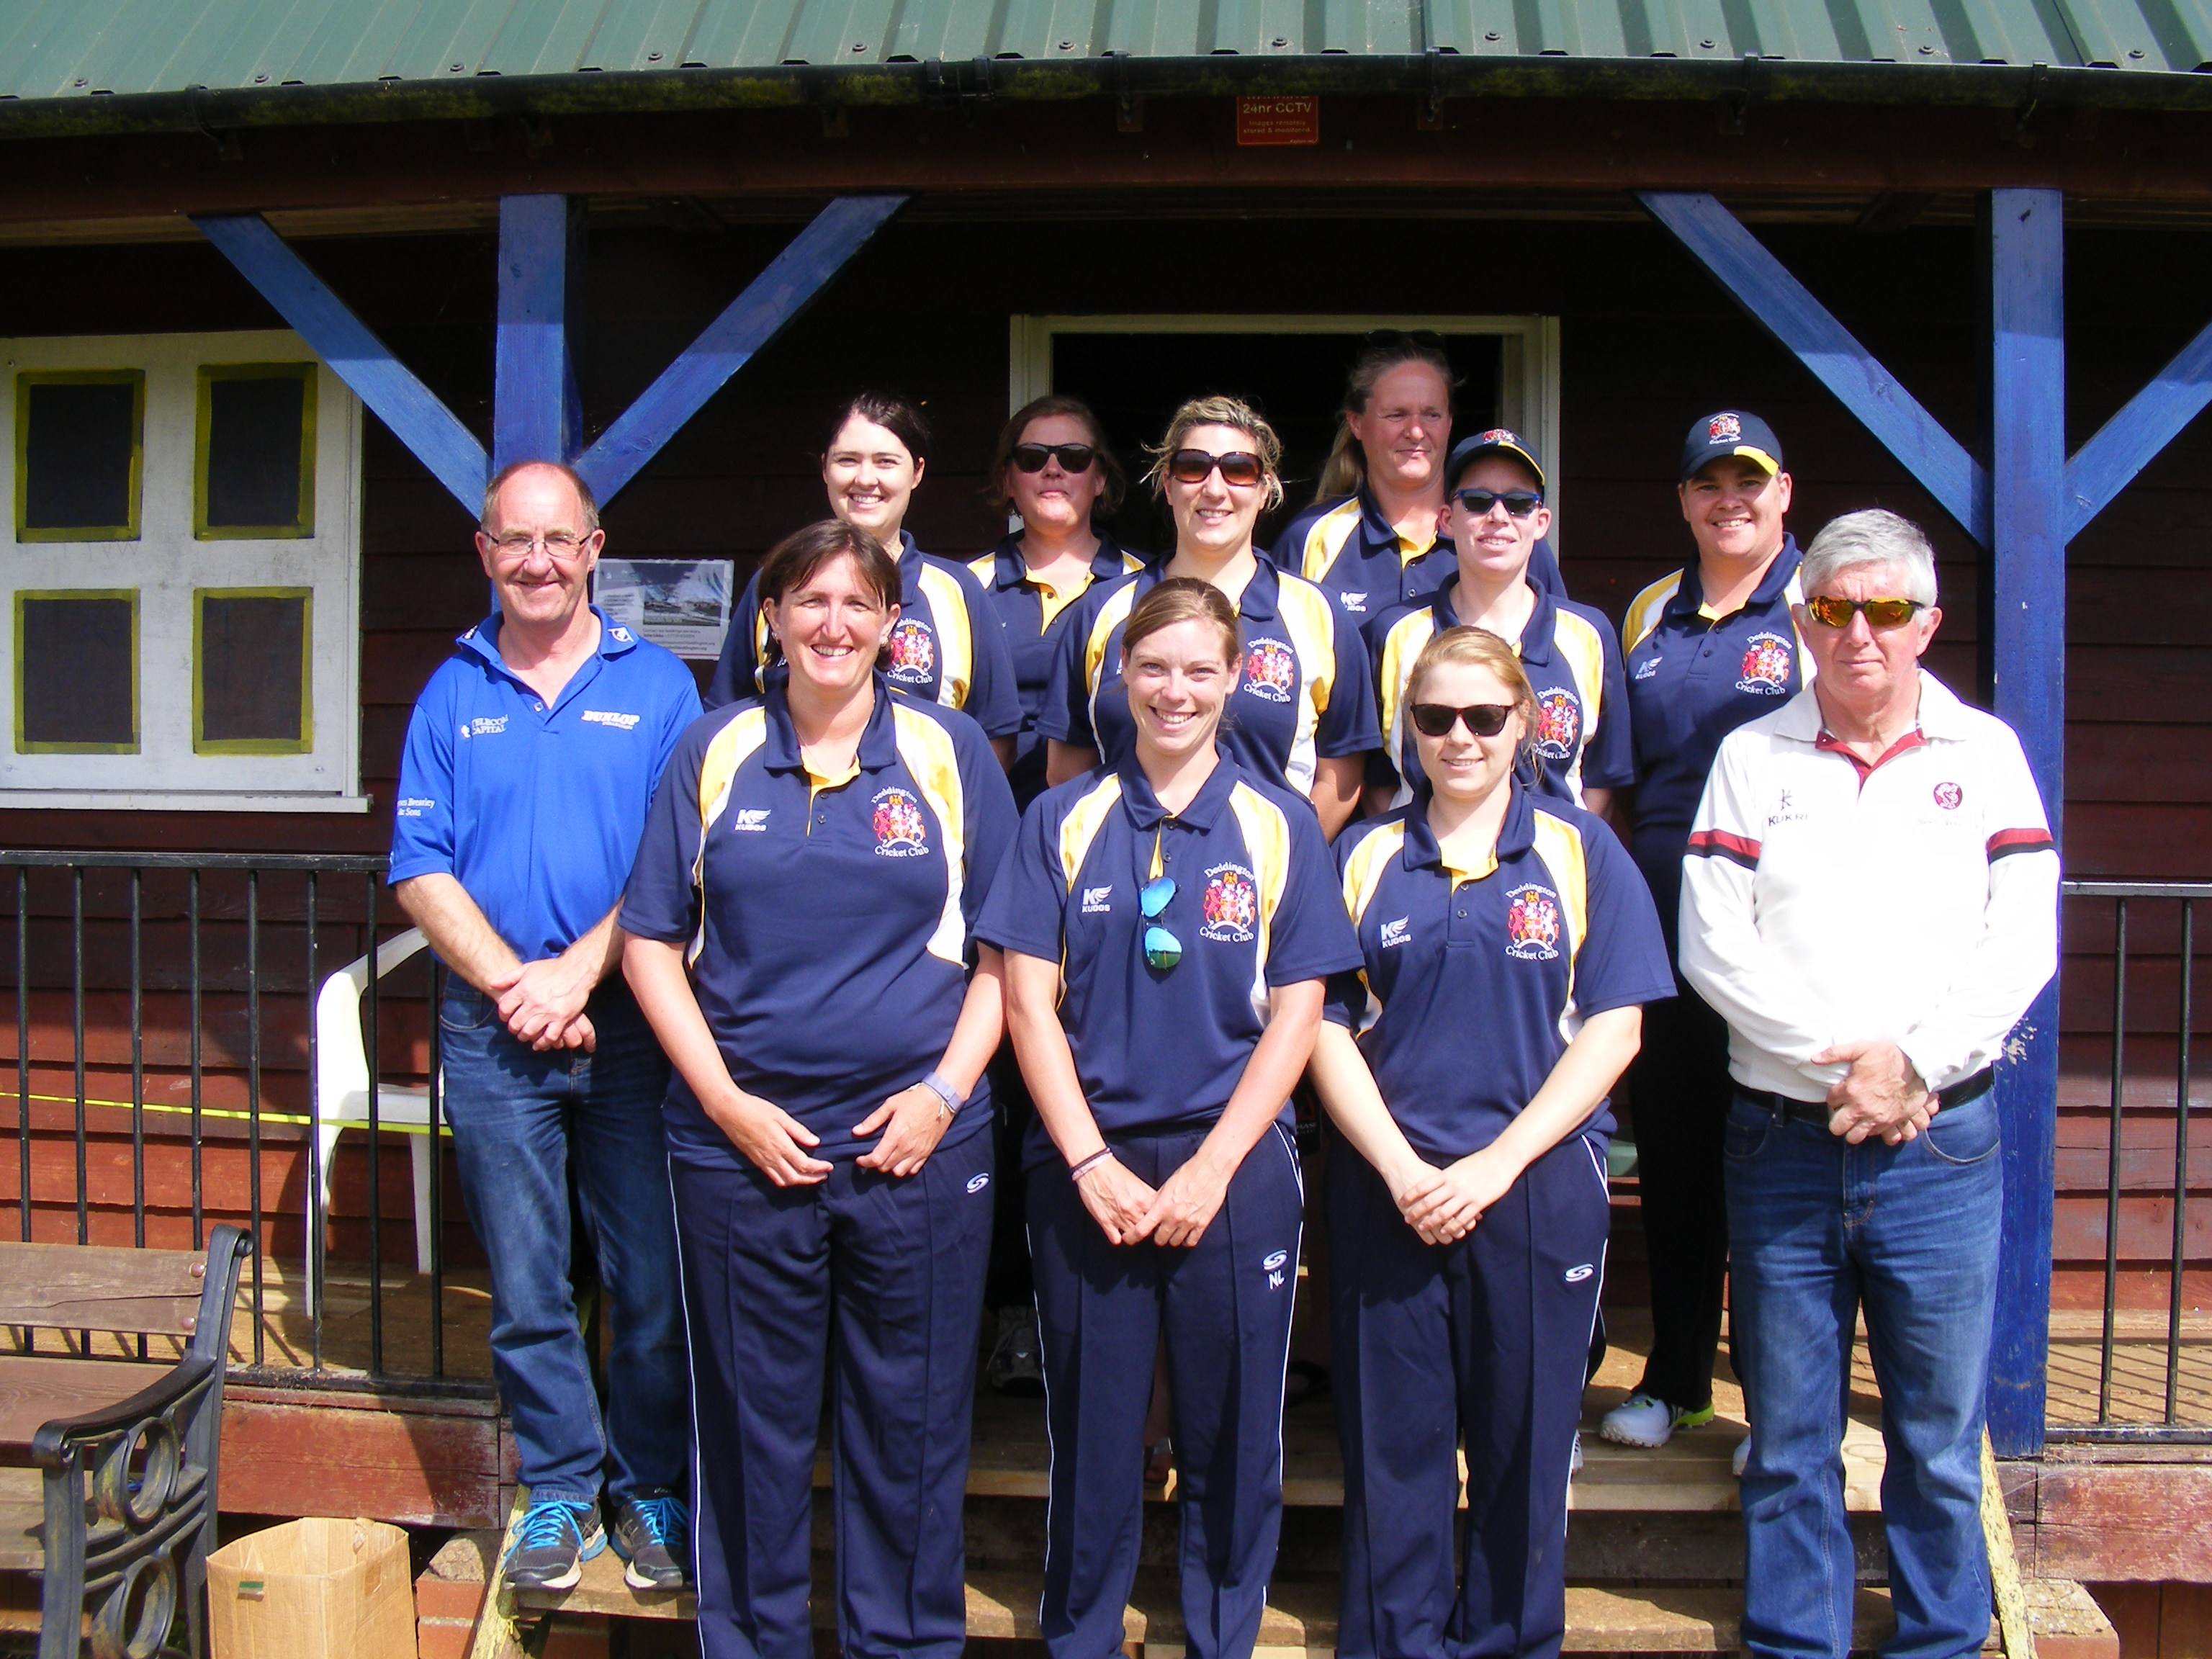 Cricket team - Deddington